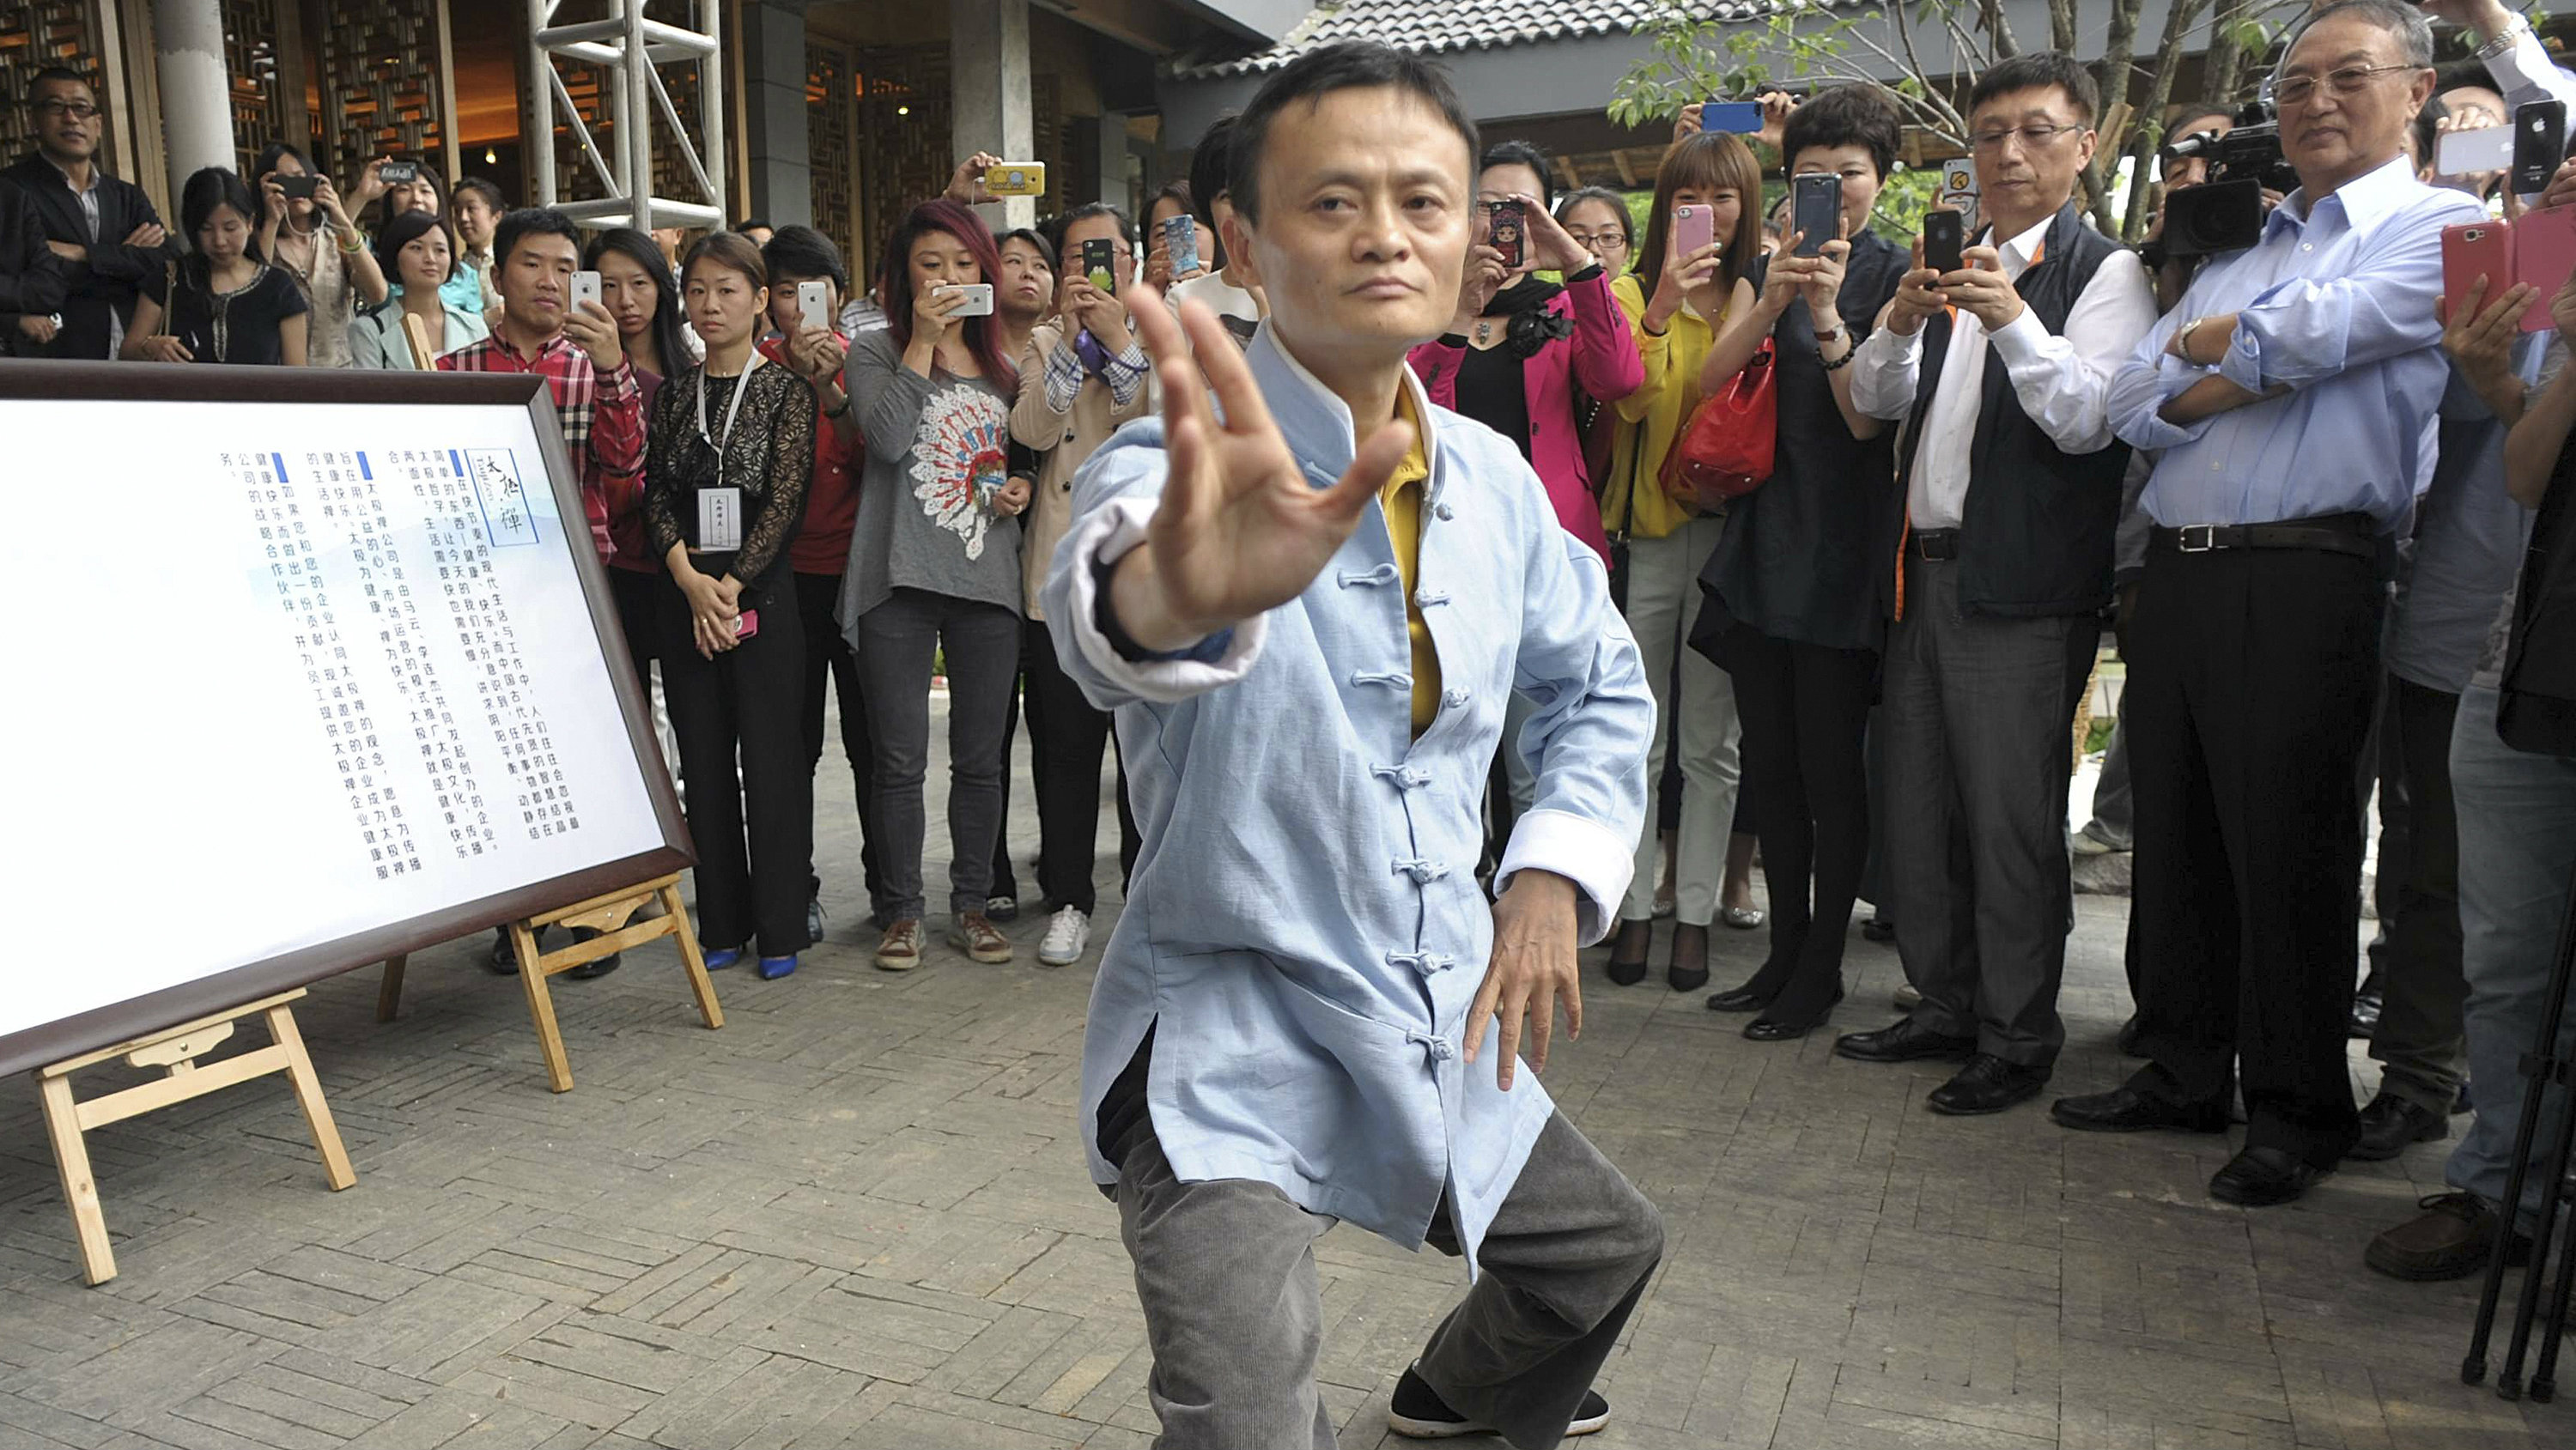 2017 Singles Day Jack Ma S Love Of Martial Arts And Tai Chi Is